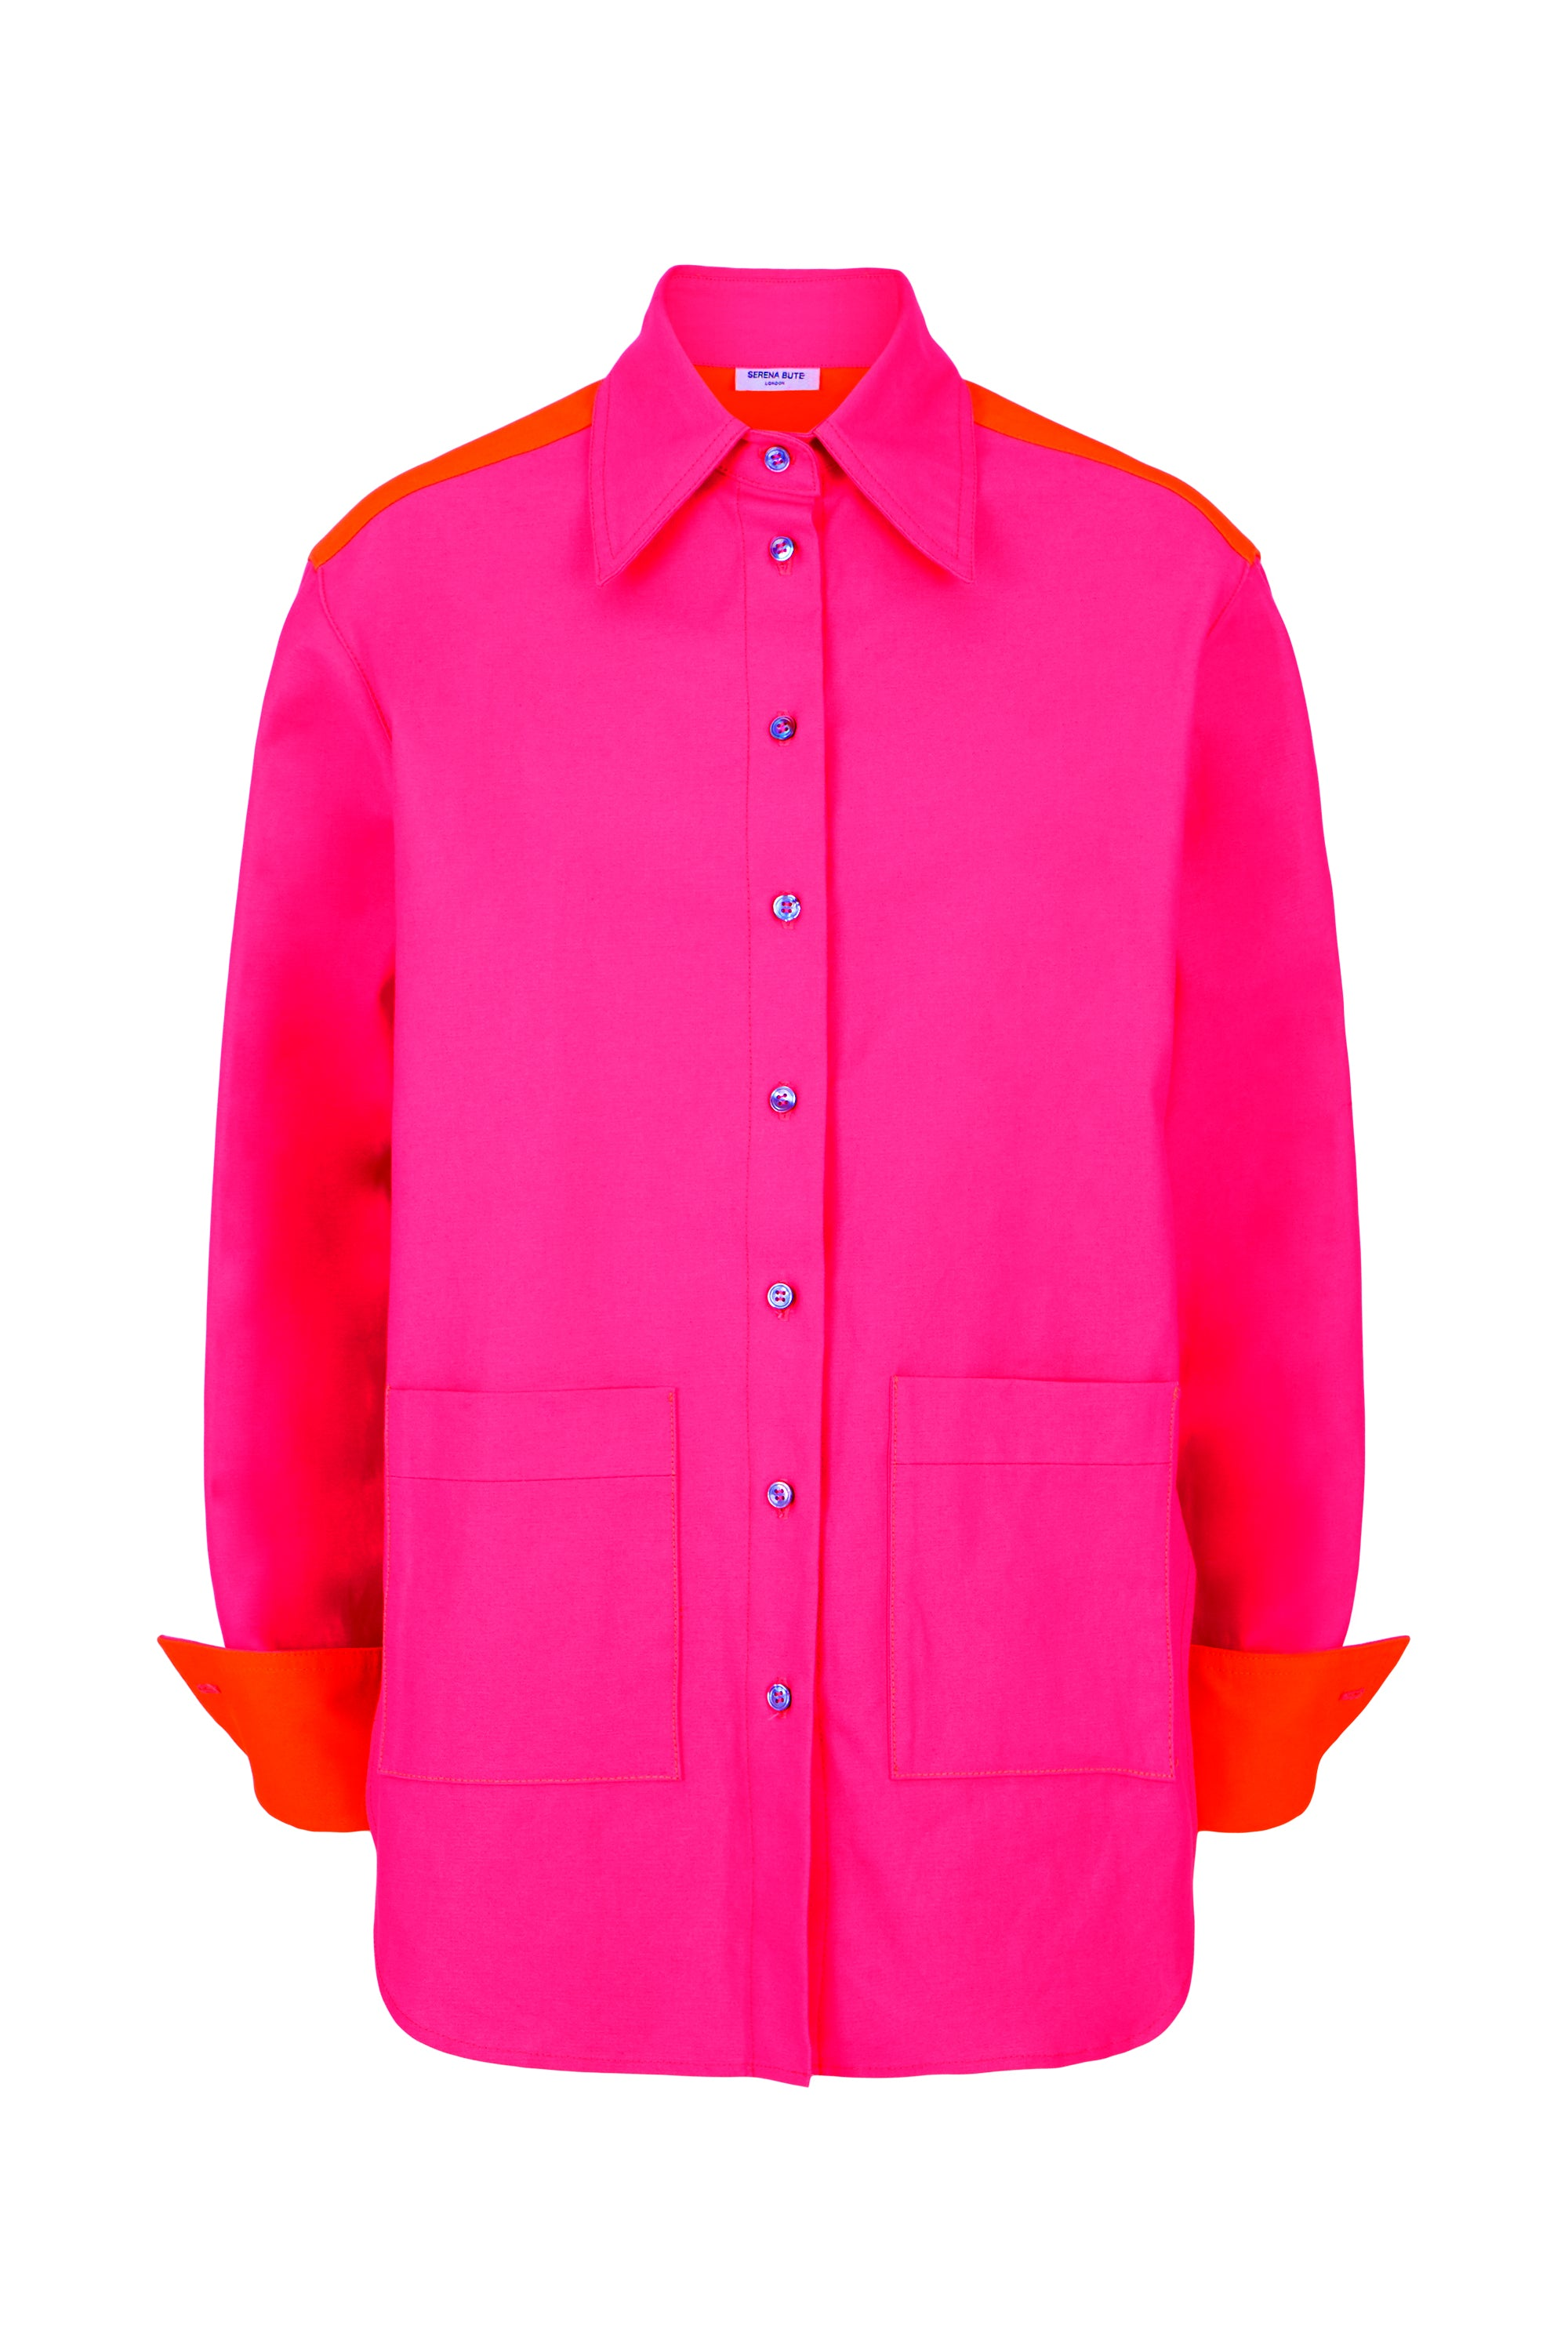 The Oversized Shirt - Pink & Orange Cotton - SERENA BUTE